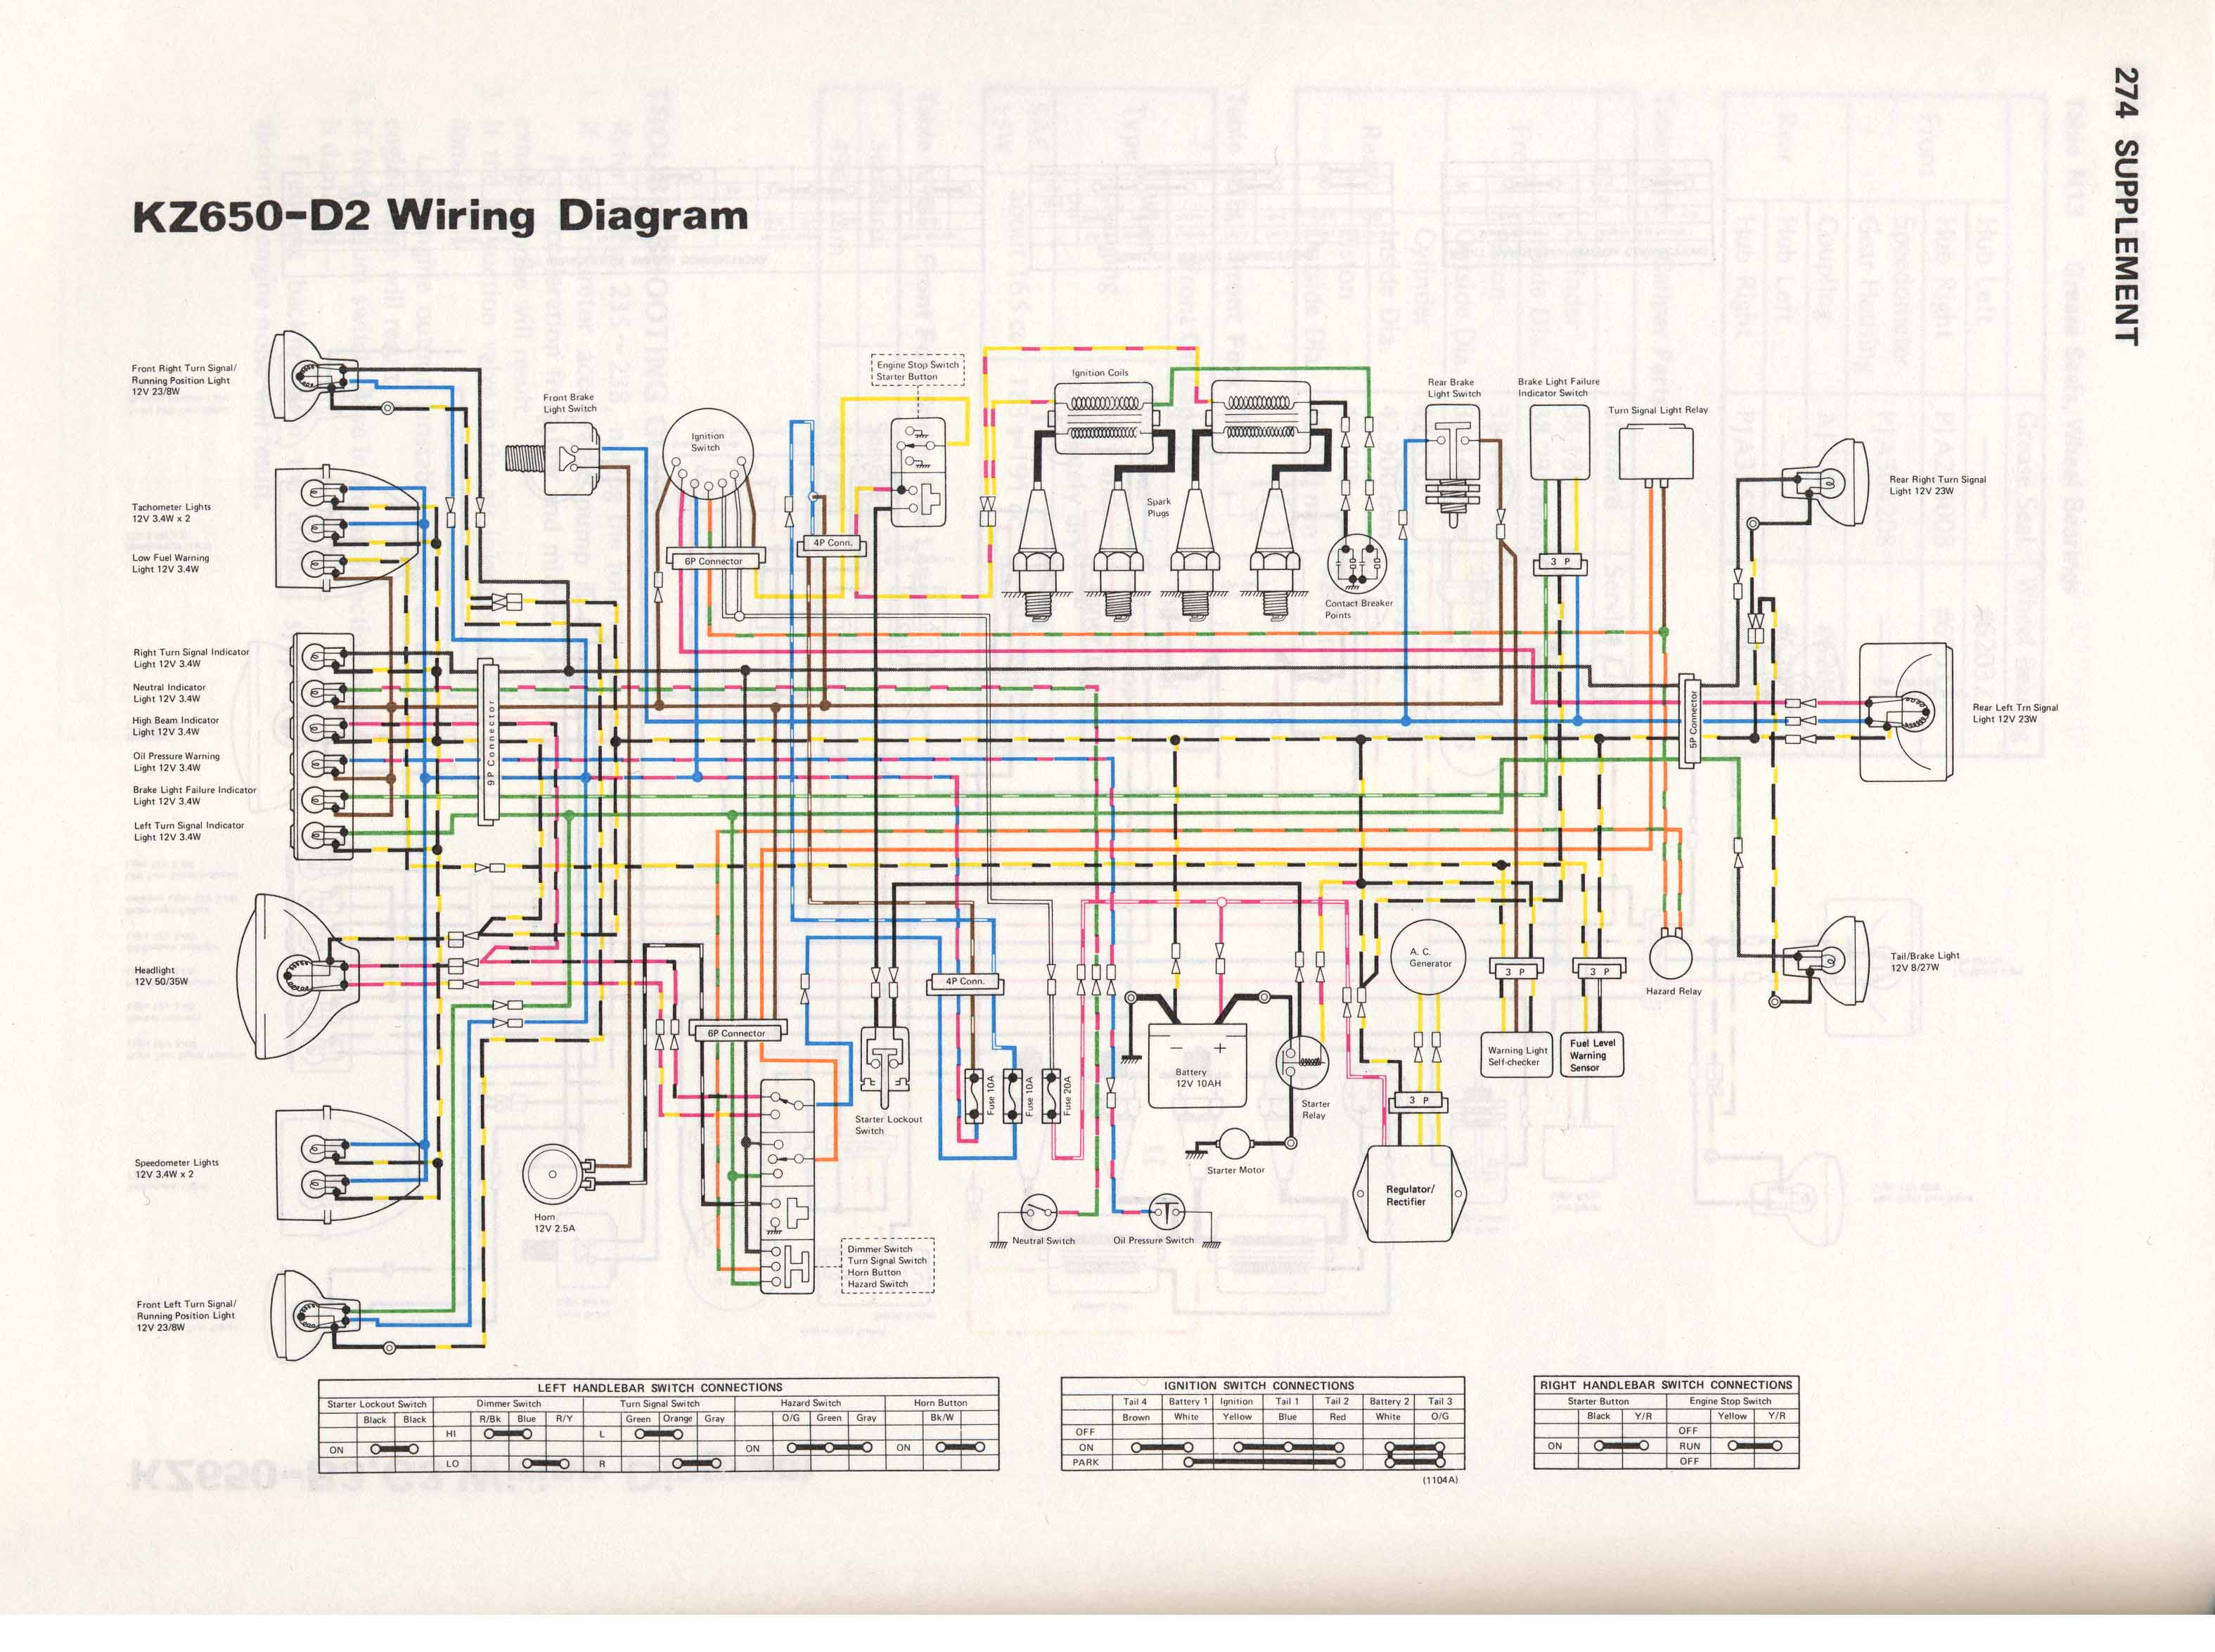 KZ650 D2 kz650 info wiring diagrams 1977 corvette wiring diagram at gsmportal.co